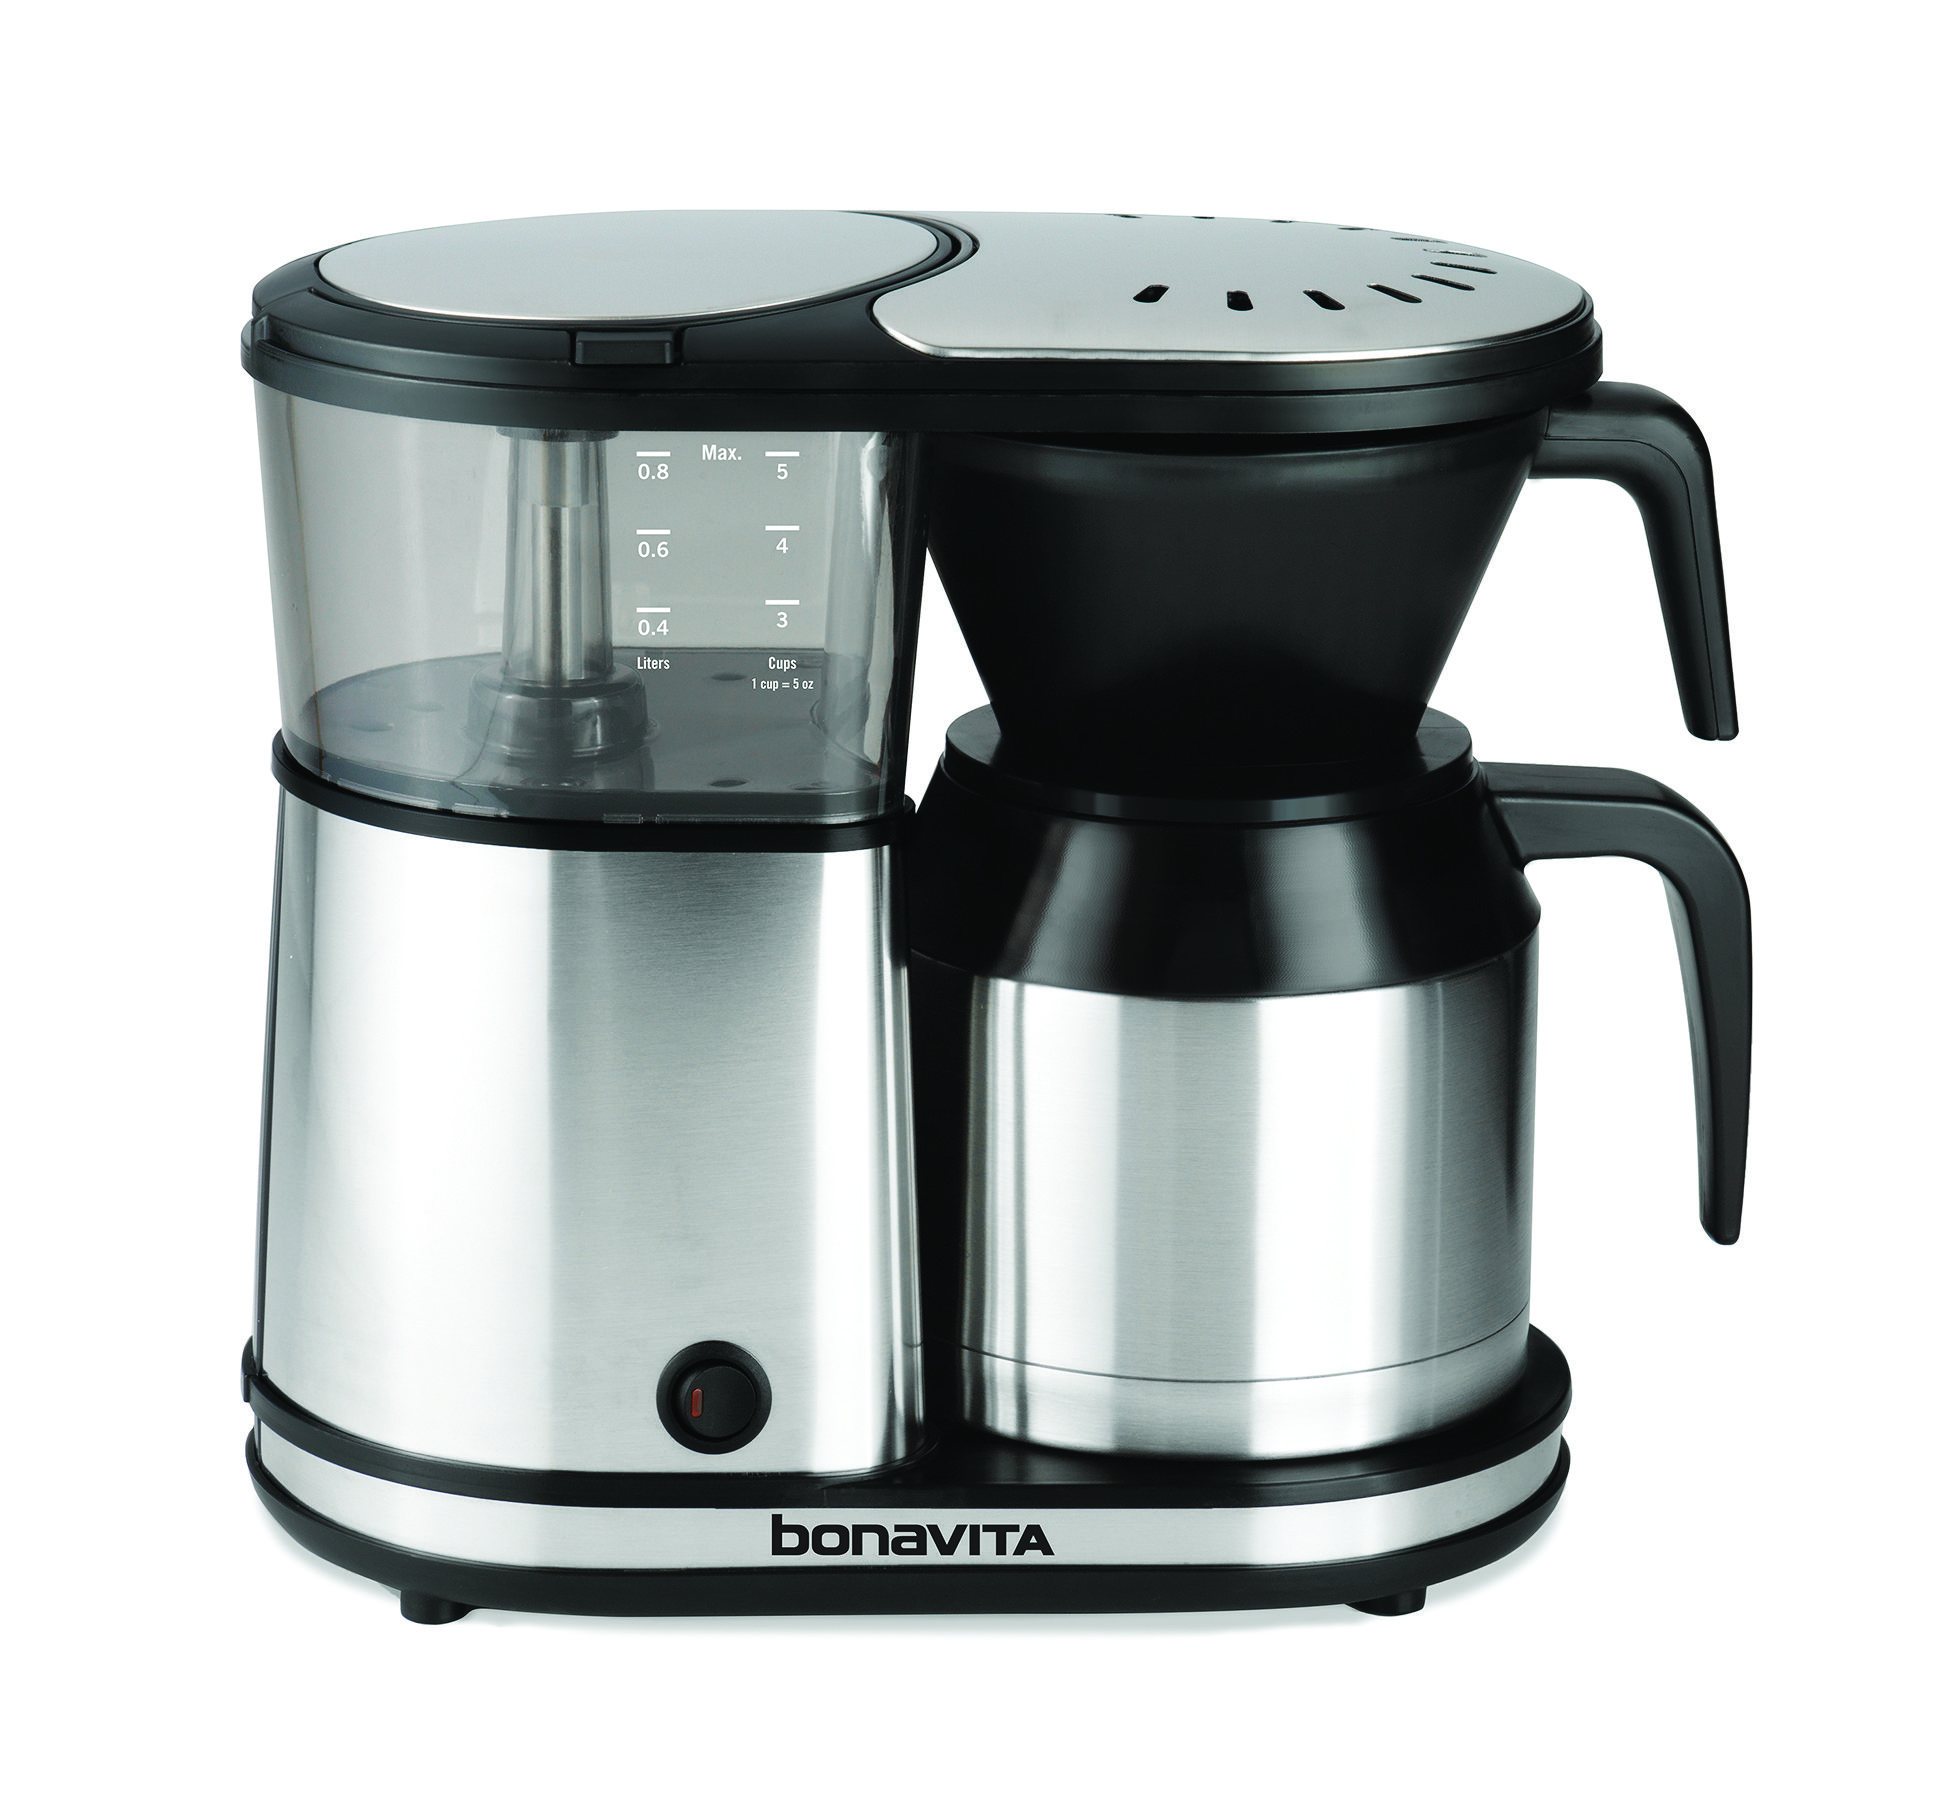 Breakfast Appliances for the Most Important Meal of the